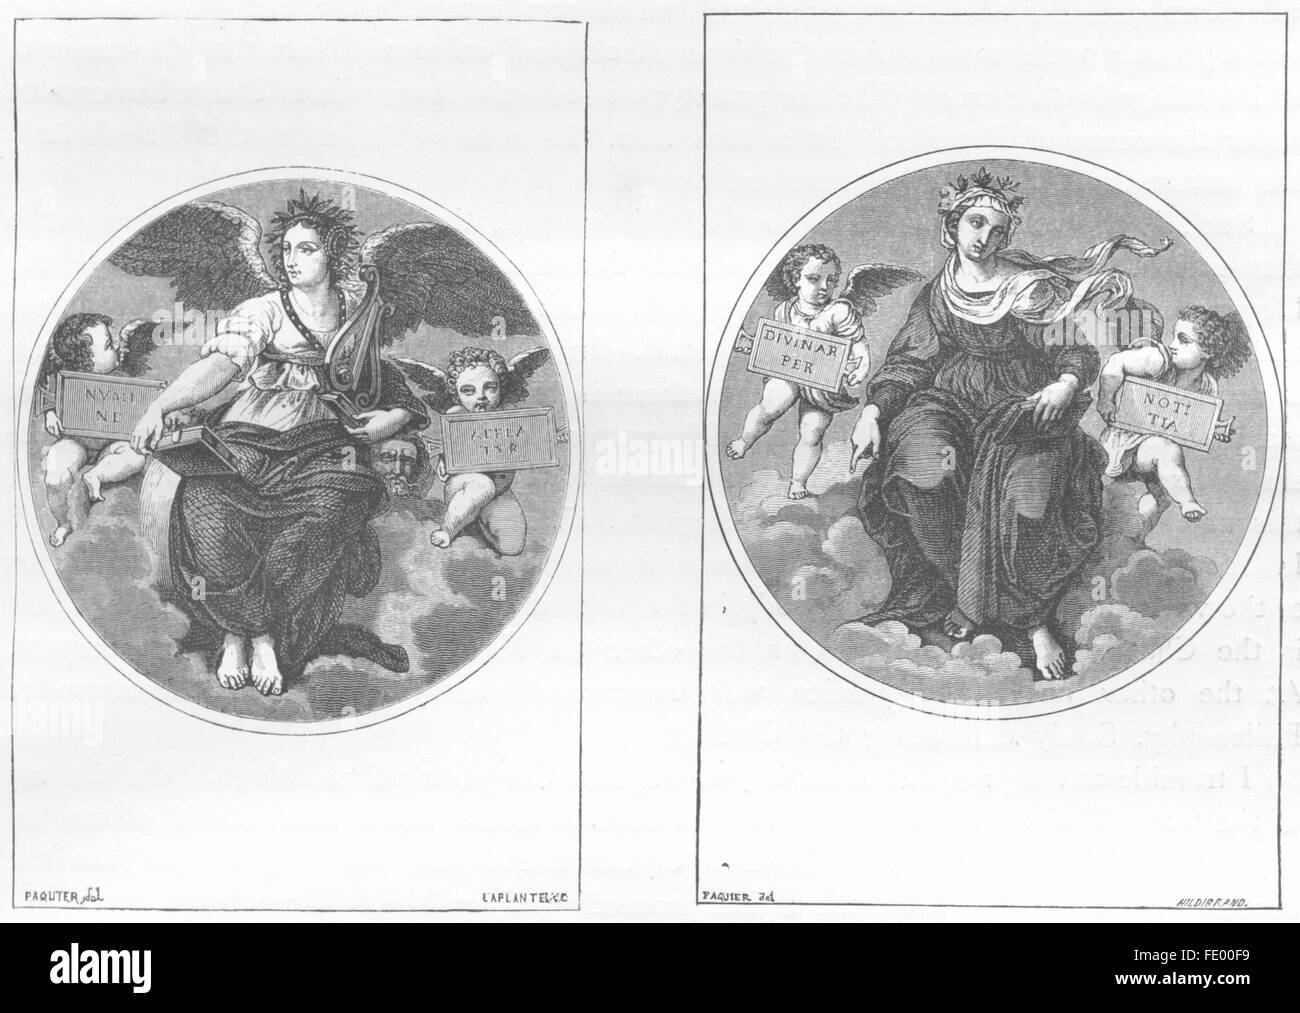 VATICAN: Poetry: Theology, antique print 1872 - Stock Image